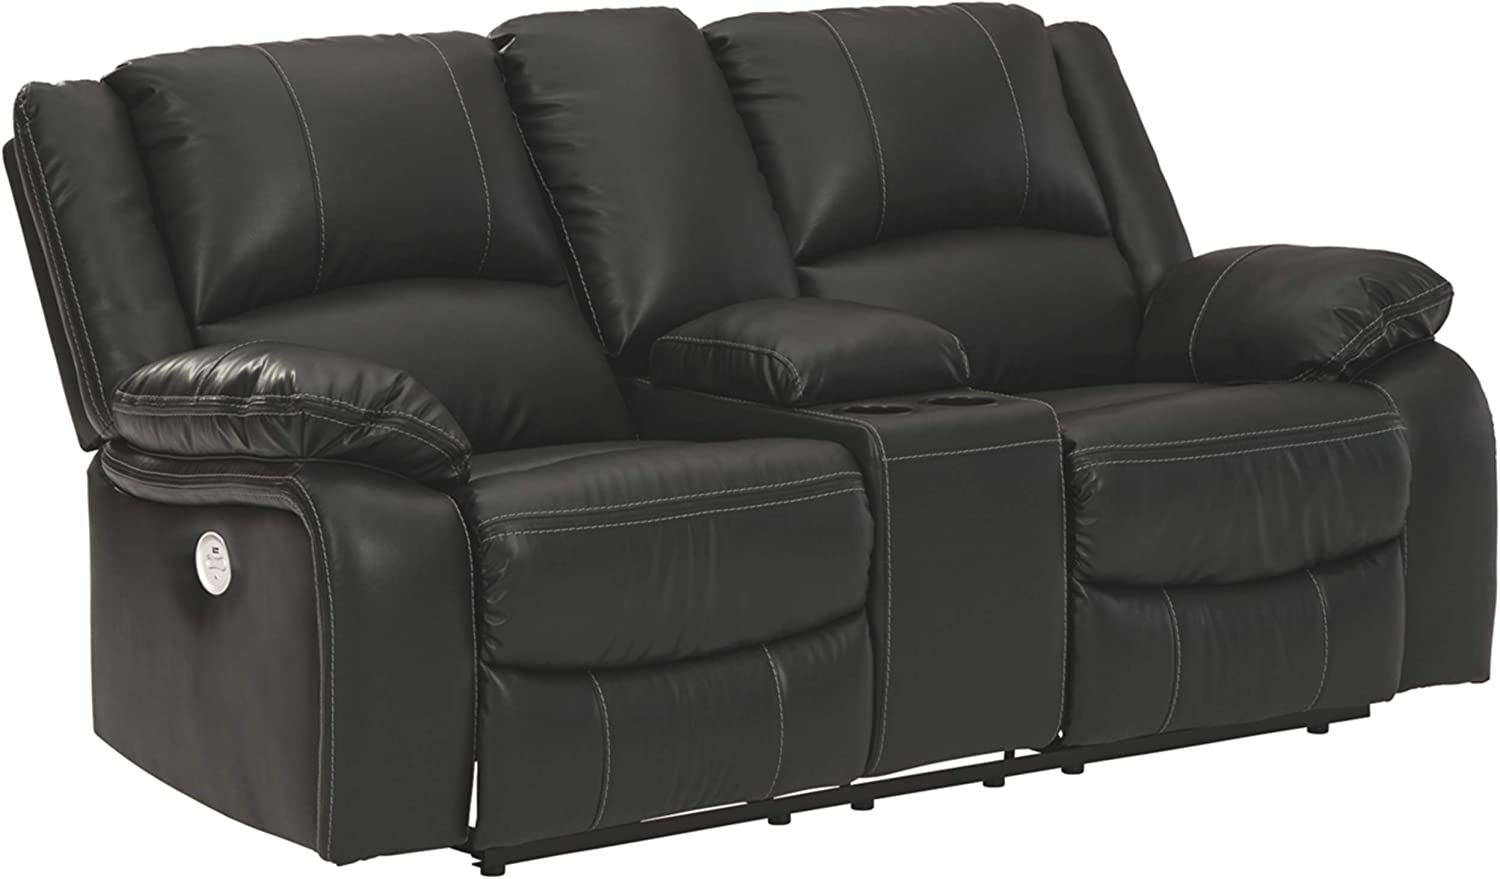 Signature Design by Ashley - Calderwell Contemporary Faux Leather Double Power Reclining Loveseat - Console - Black